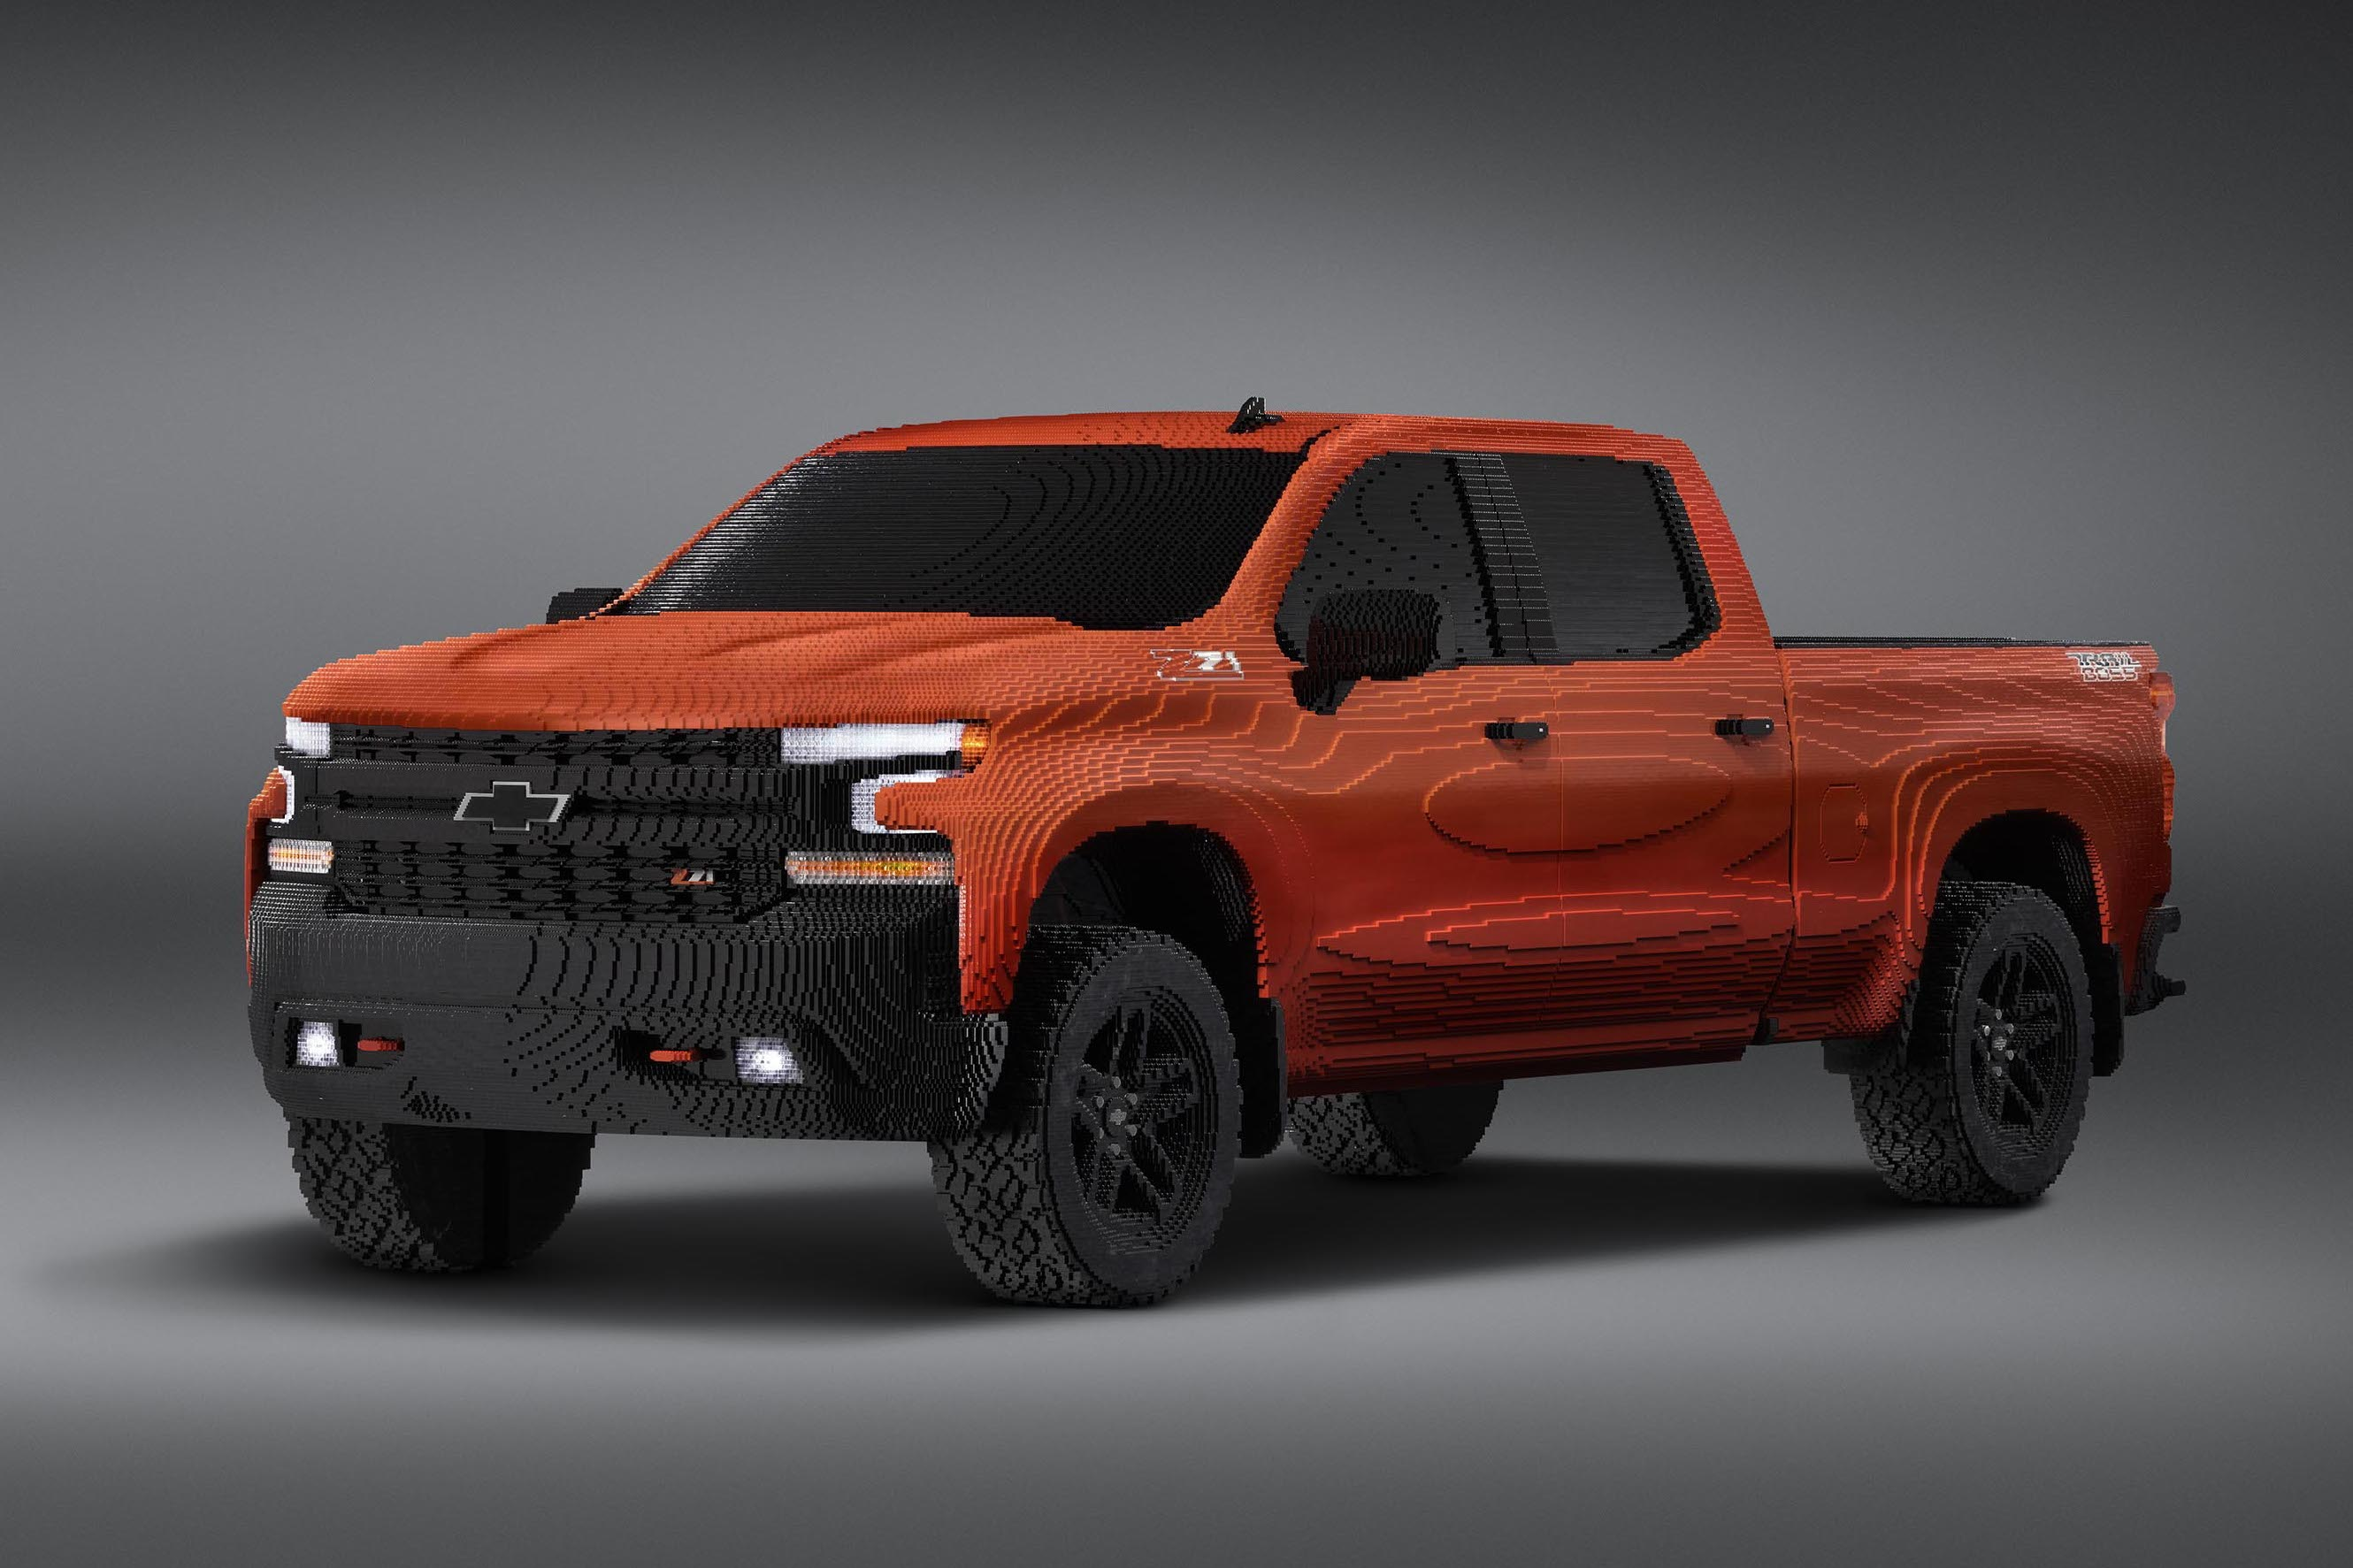 Check Out This Life-Size Lego Chevy Silverado Made from ...